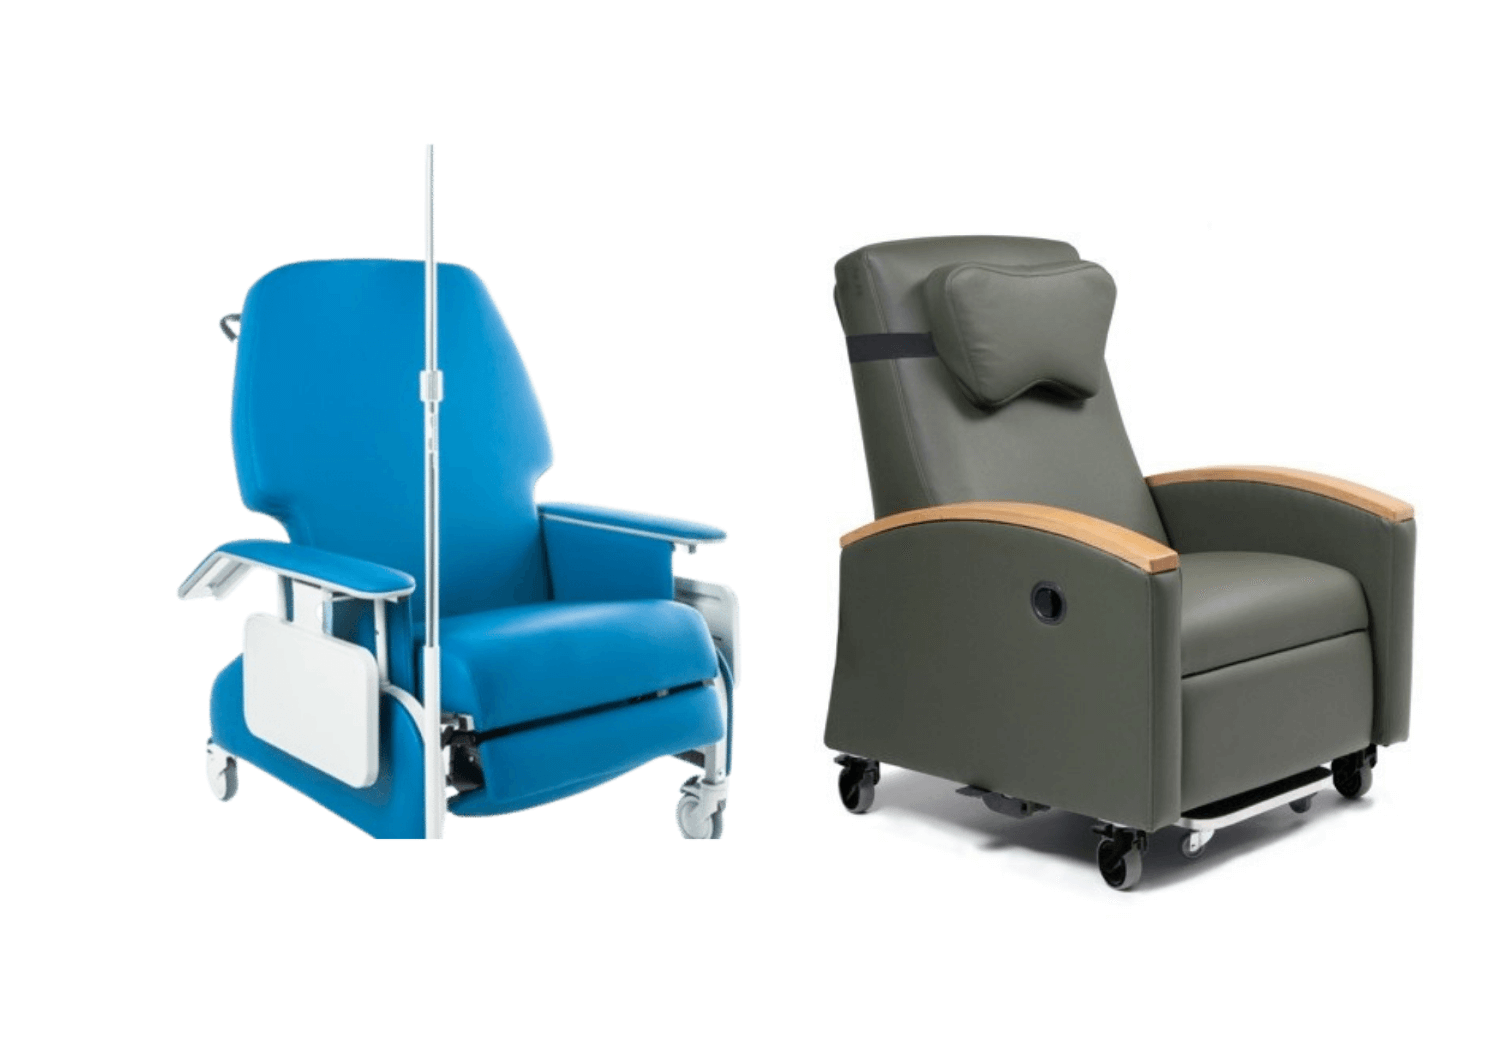 recliners-light-weight-and-easy-to-transfer-patient-from-bed-to-chair